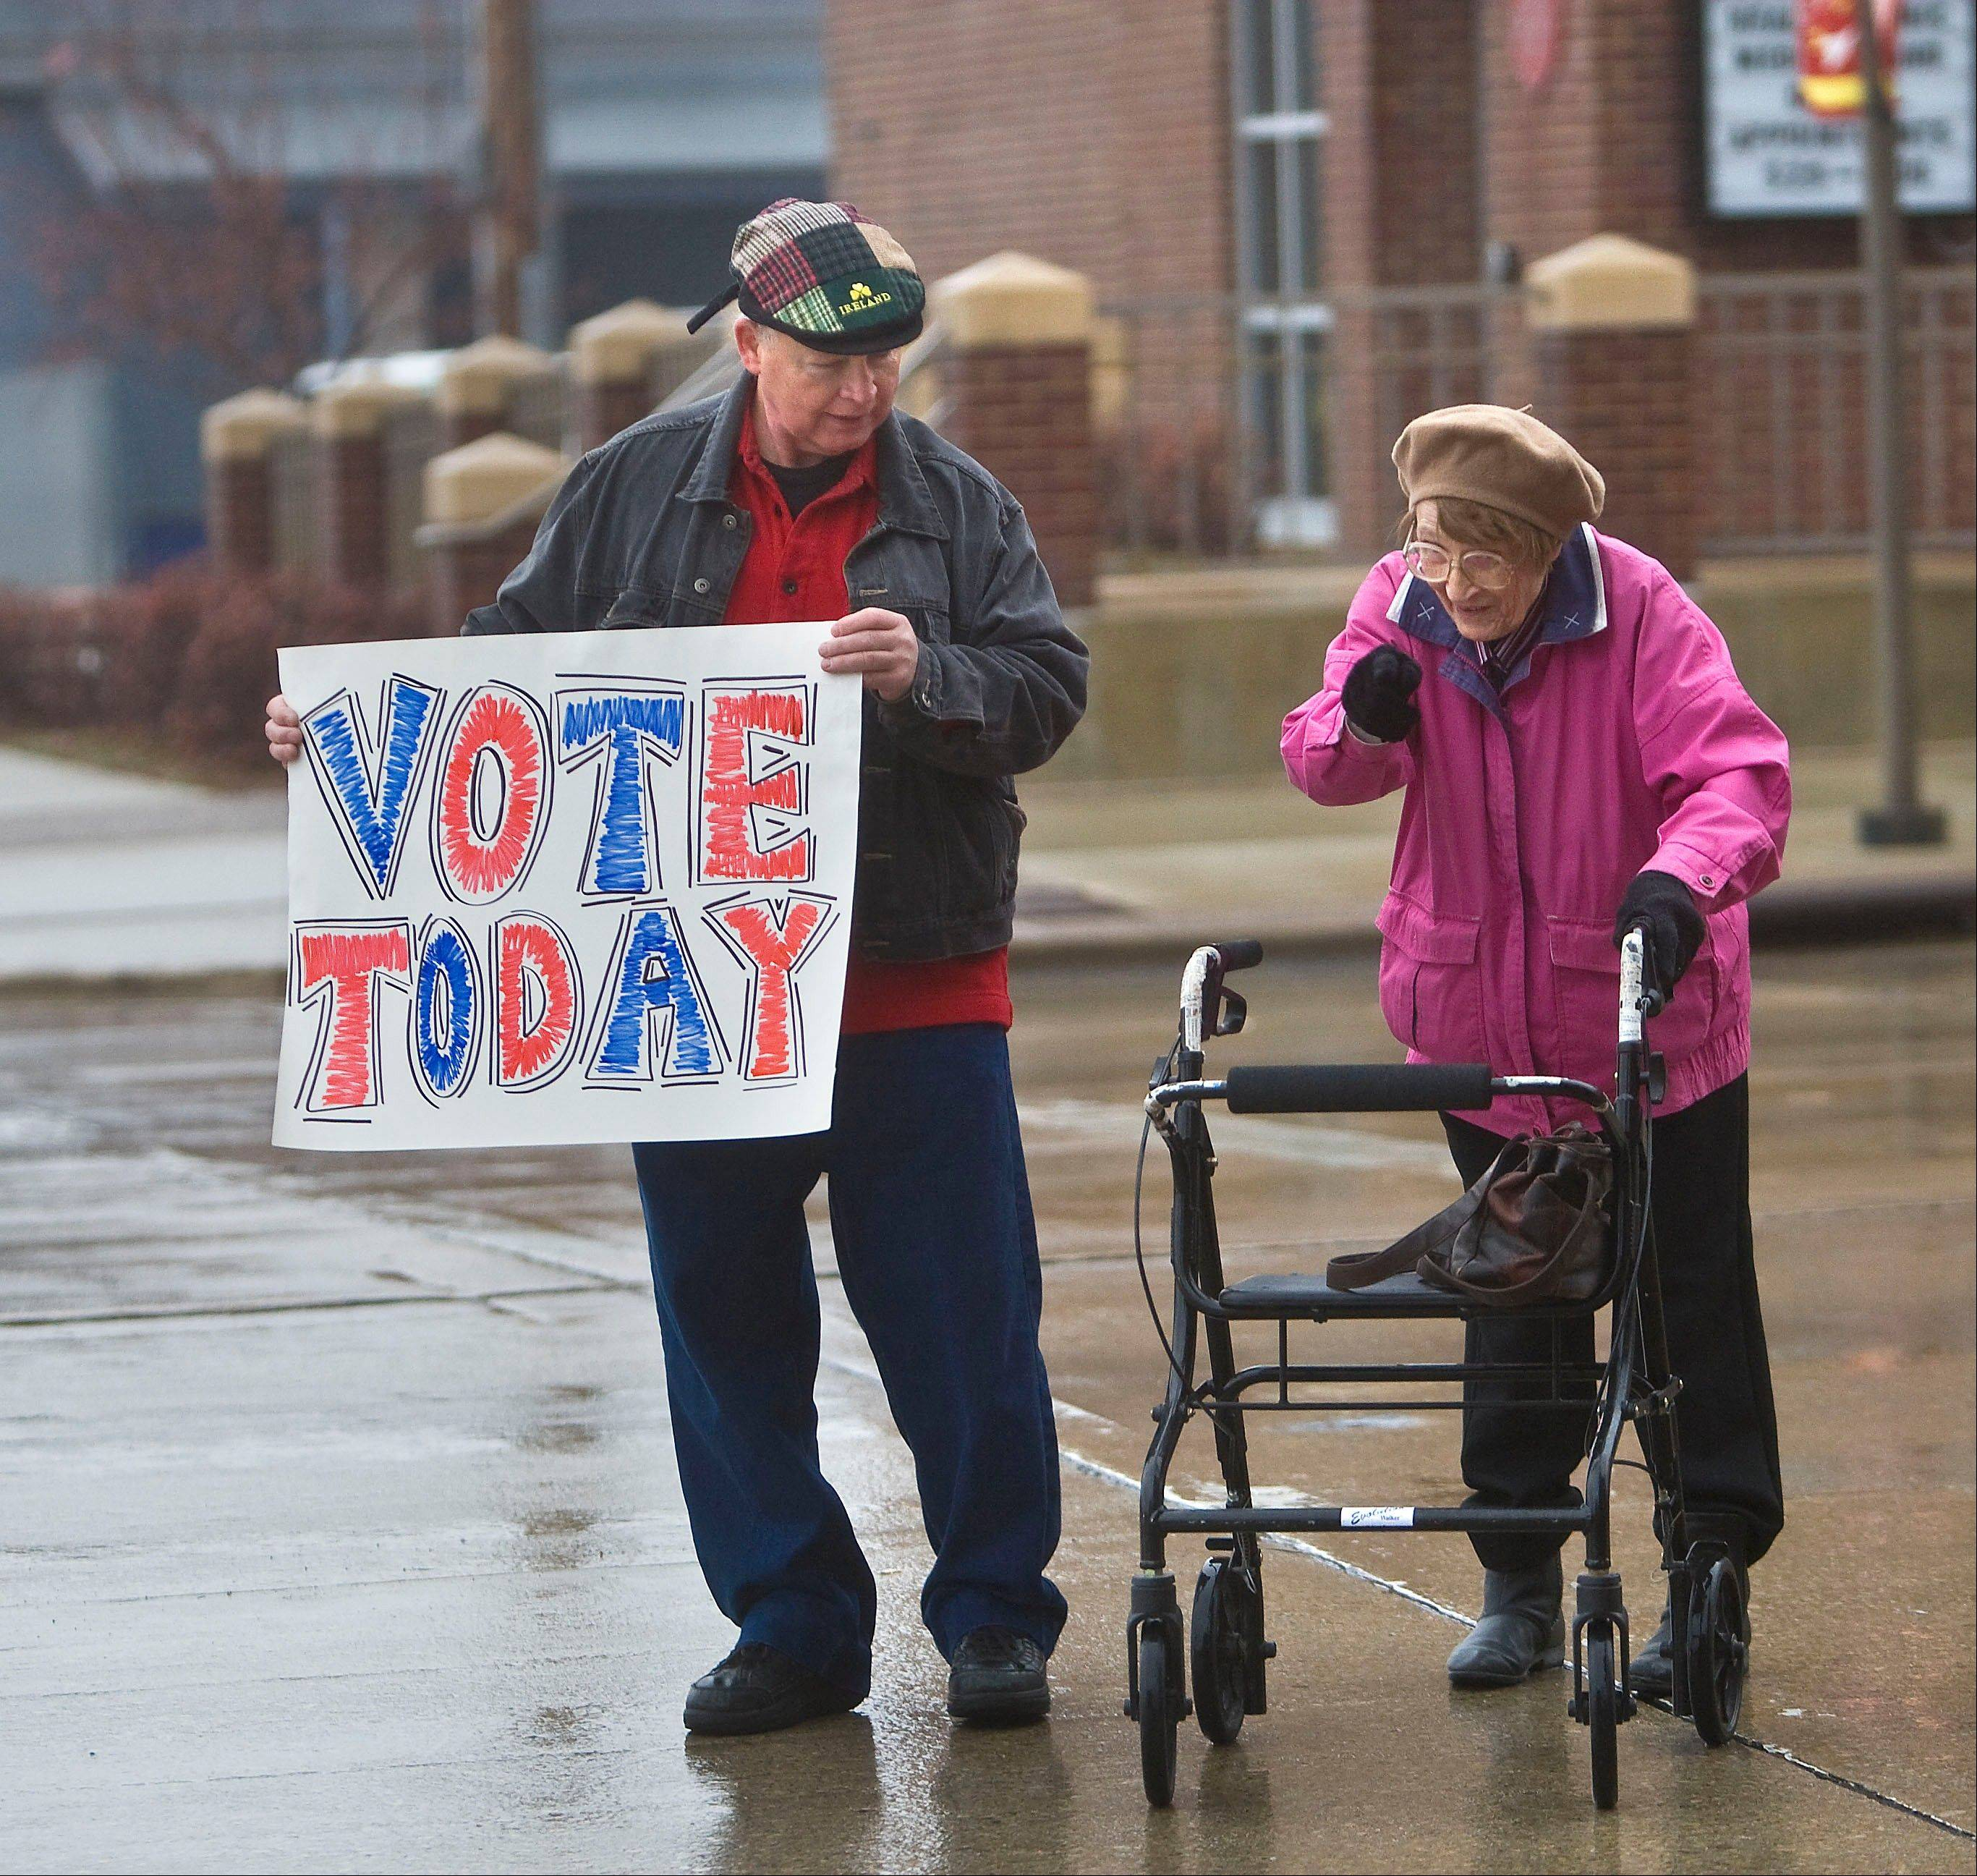 Mike Maloney briefly stops traffic so Elizabeth Rahn can cross the street to get to her polling place, outside the Rochester Senior Center, Tuesday, Nov. 6, 2012 in Rochester, Minn. Maloney was encouraging people to vote.